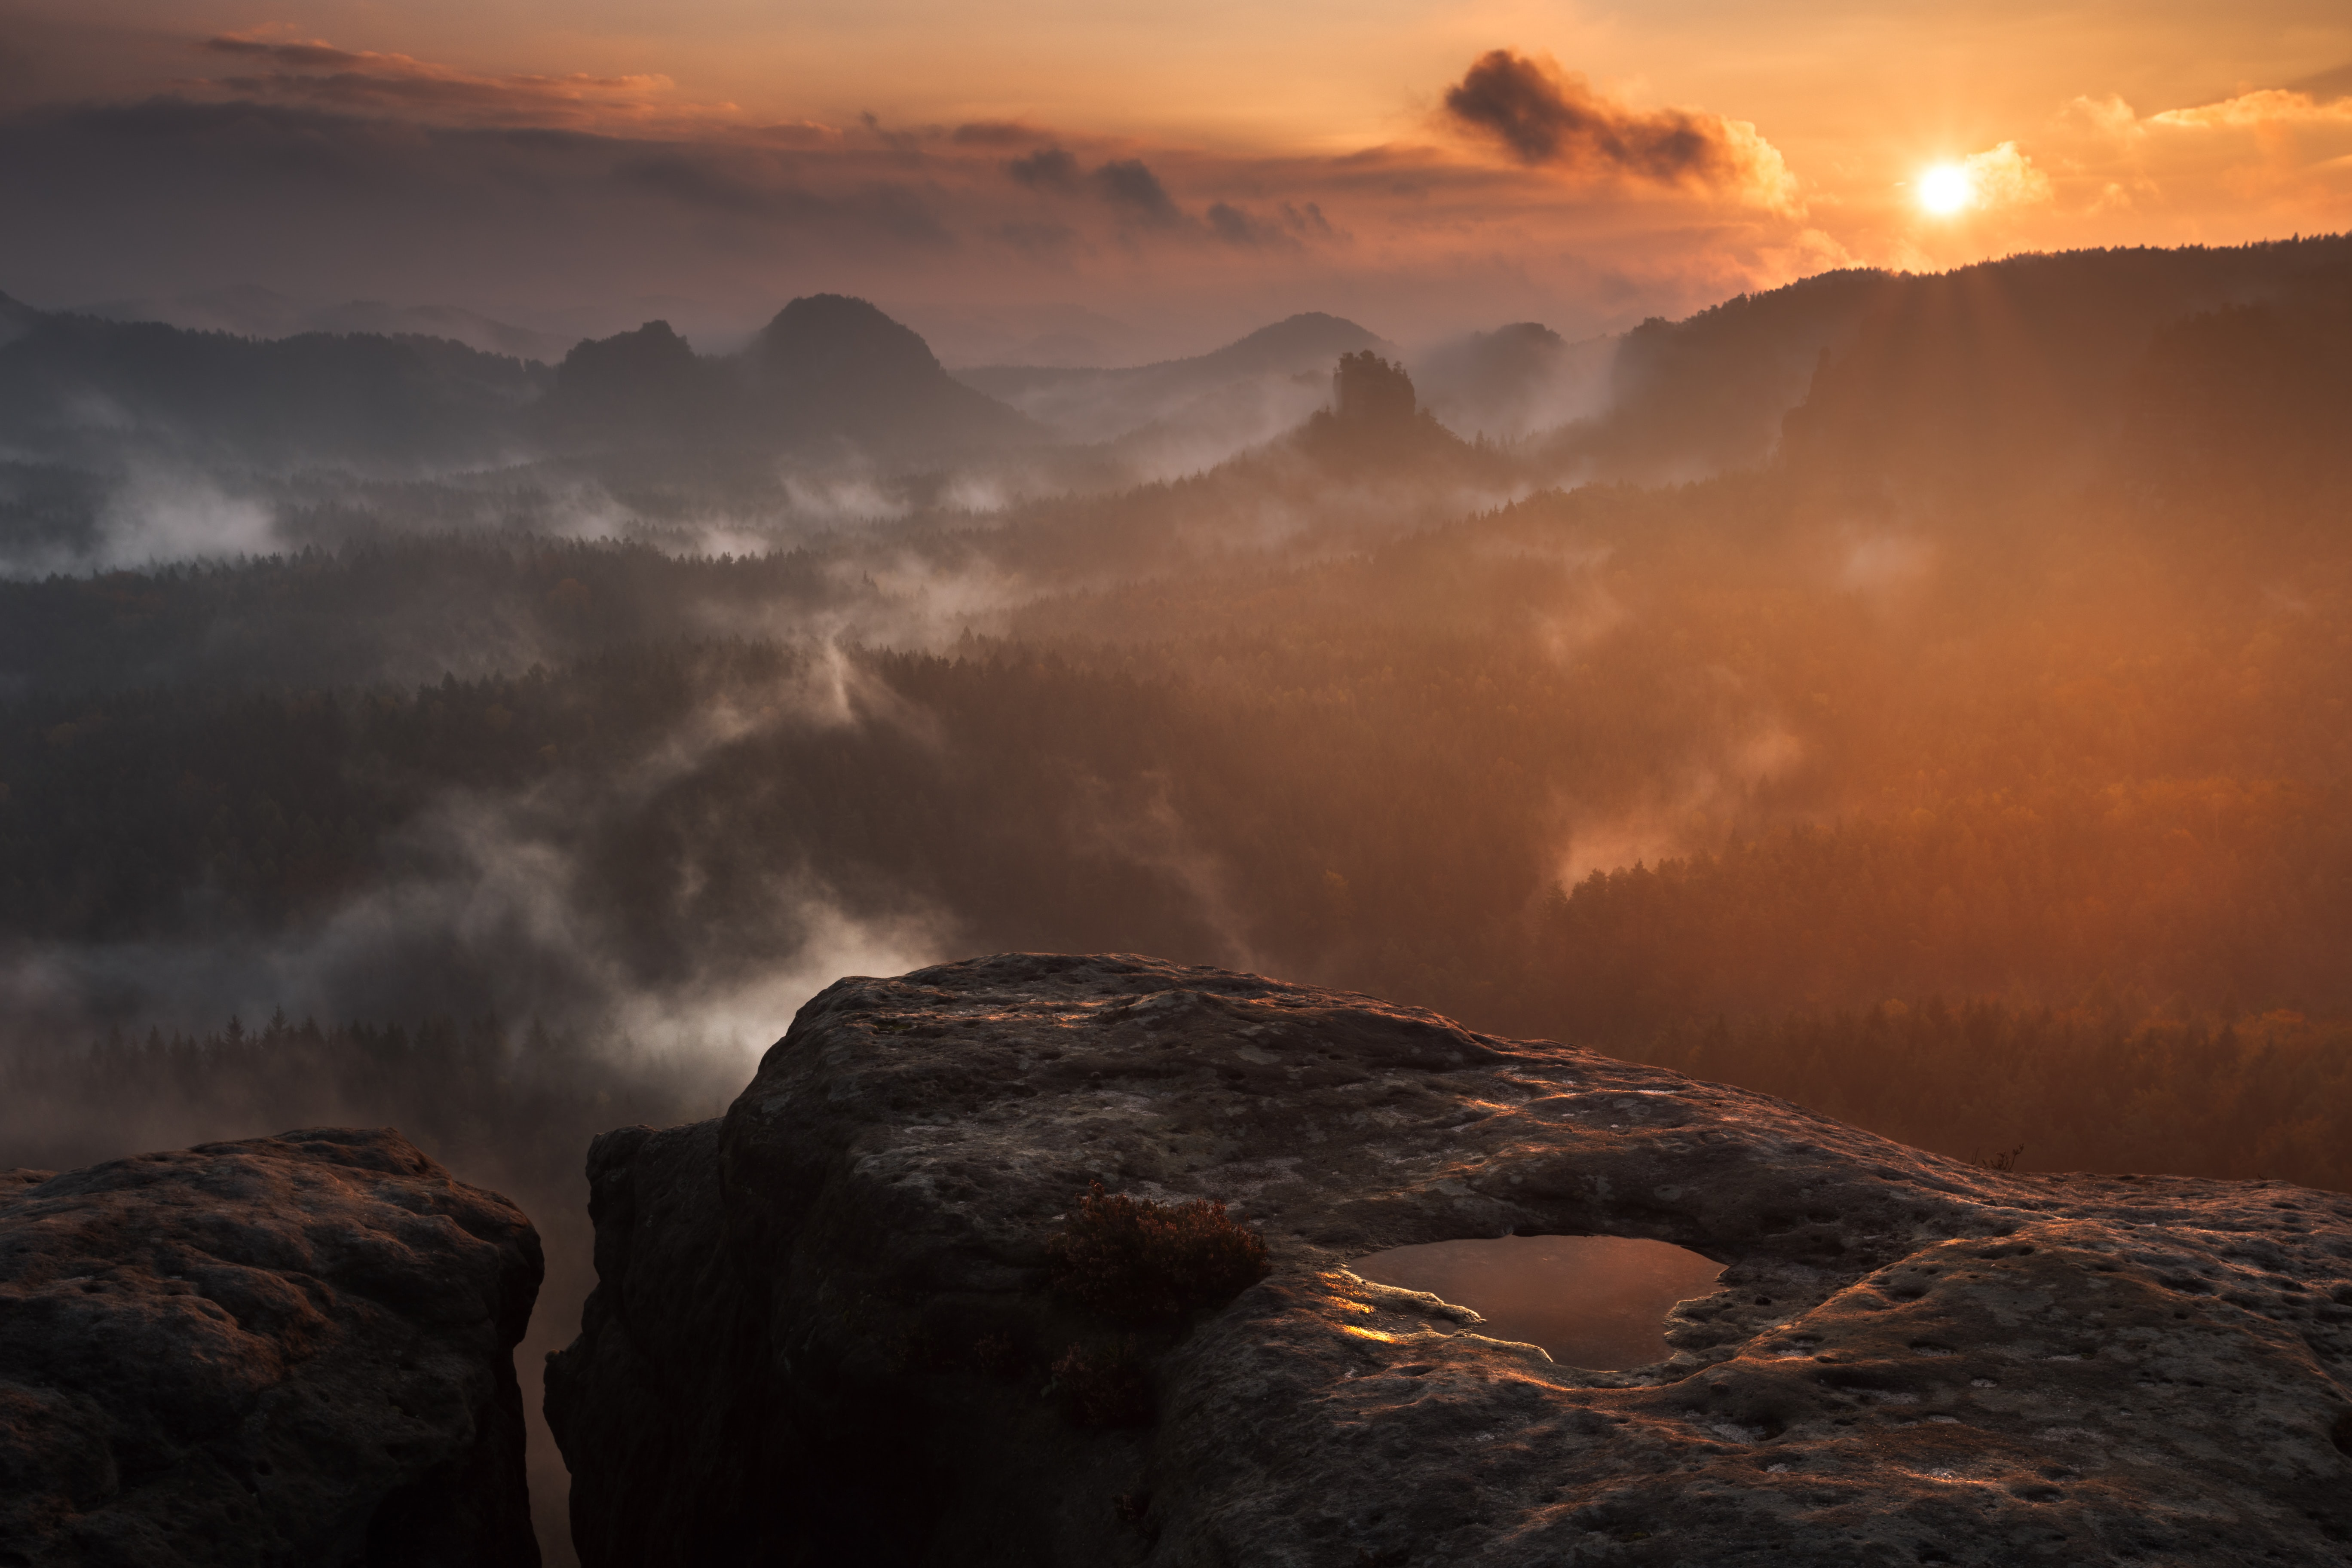 A puddle on a smooth rocky ledge overlooking foggy forests during sunset